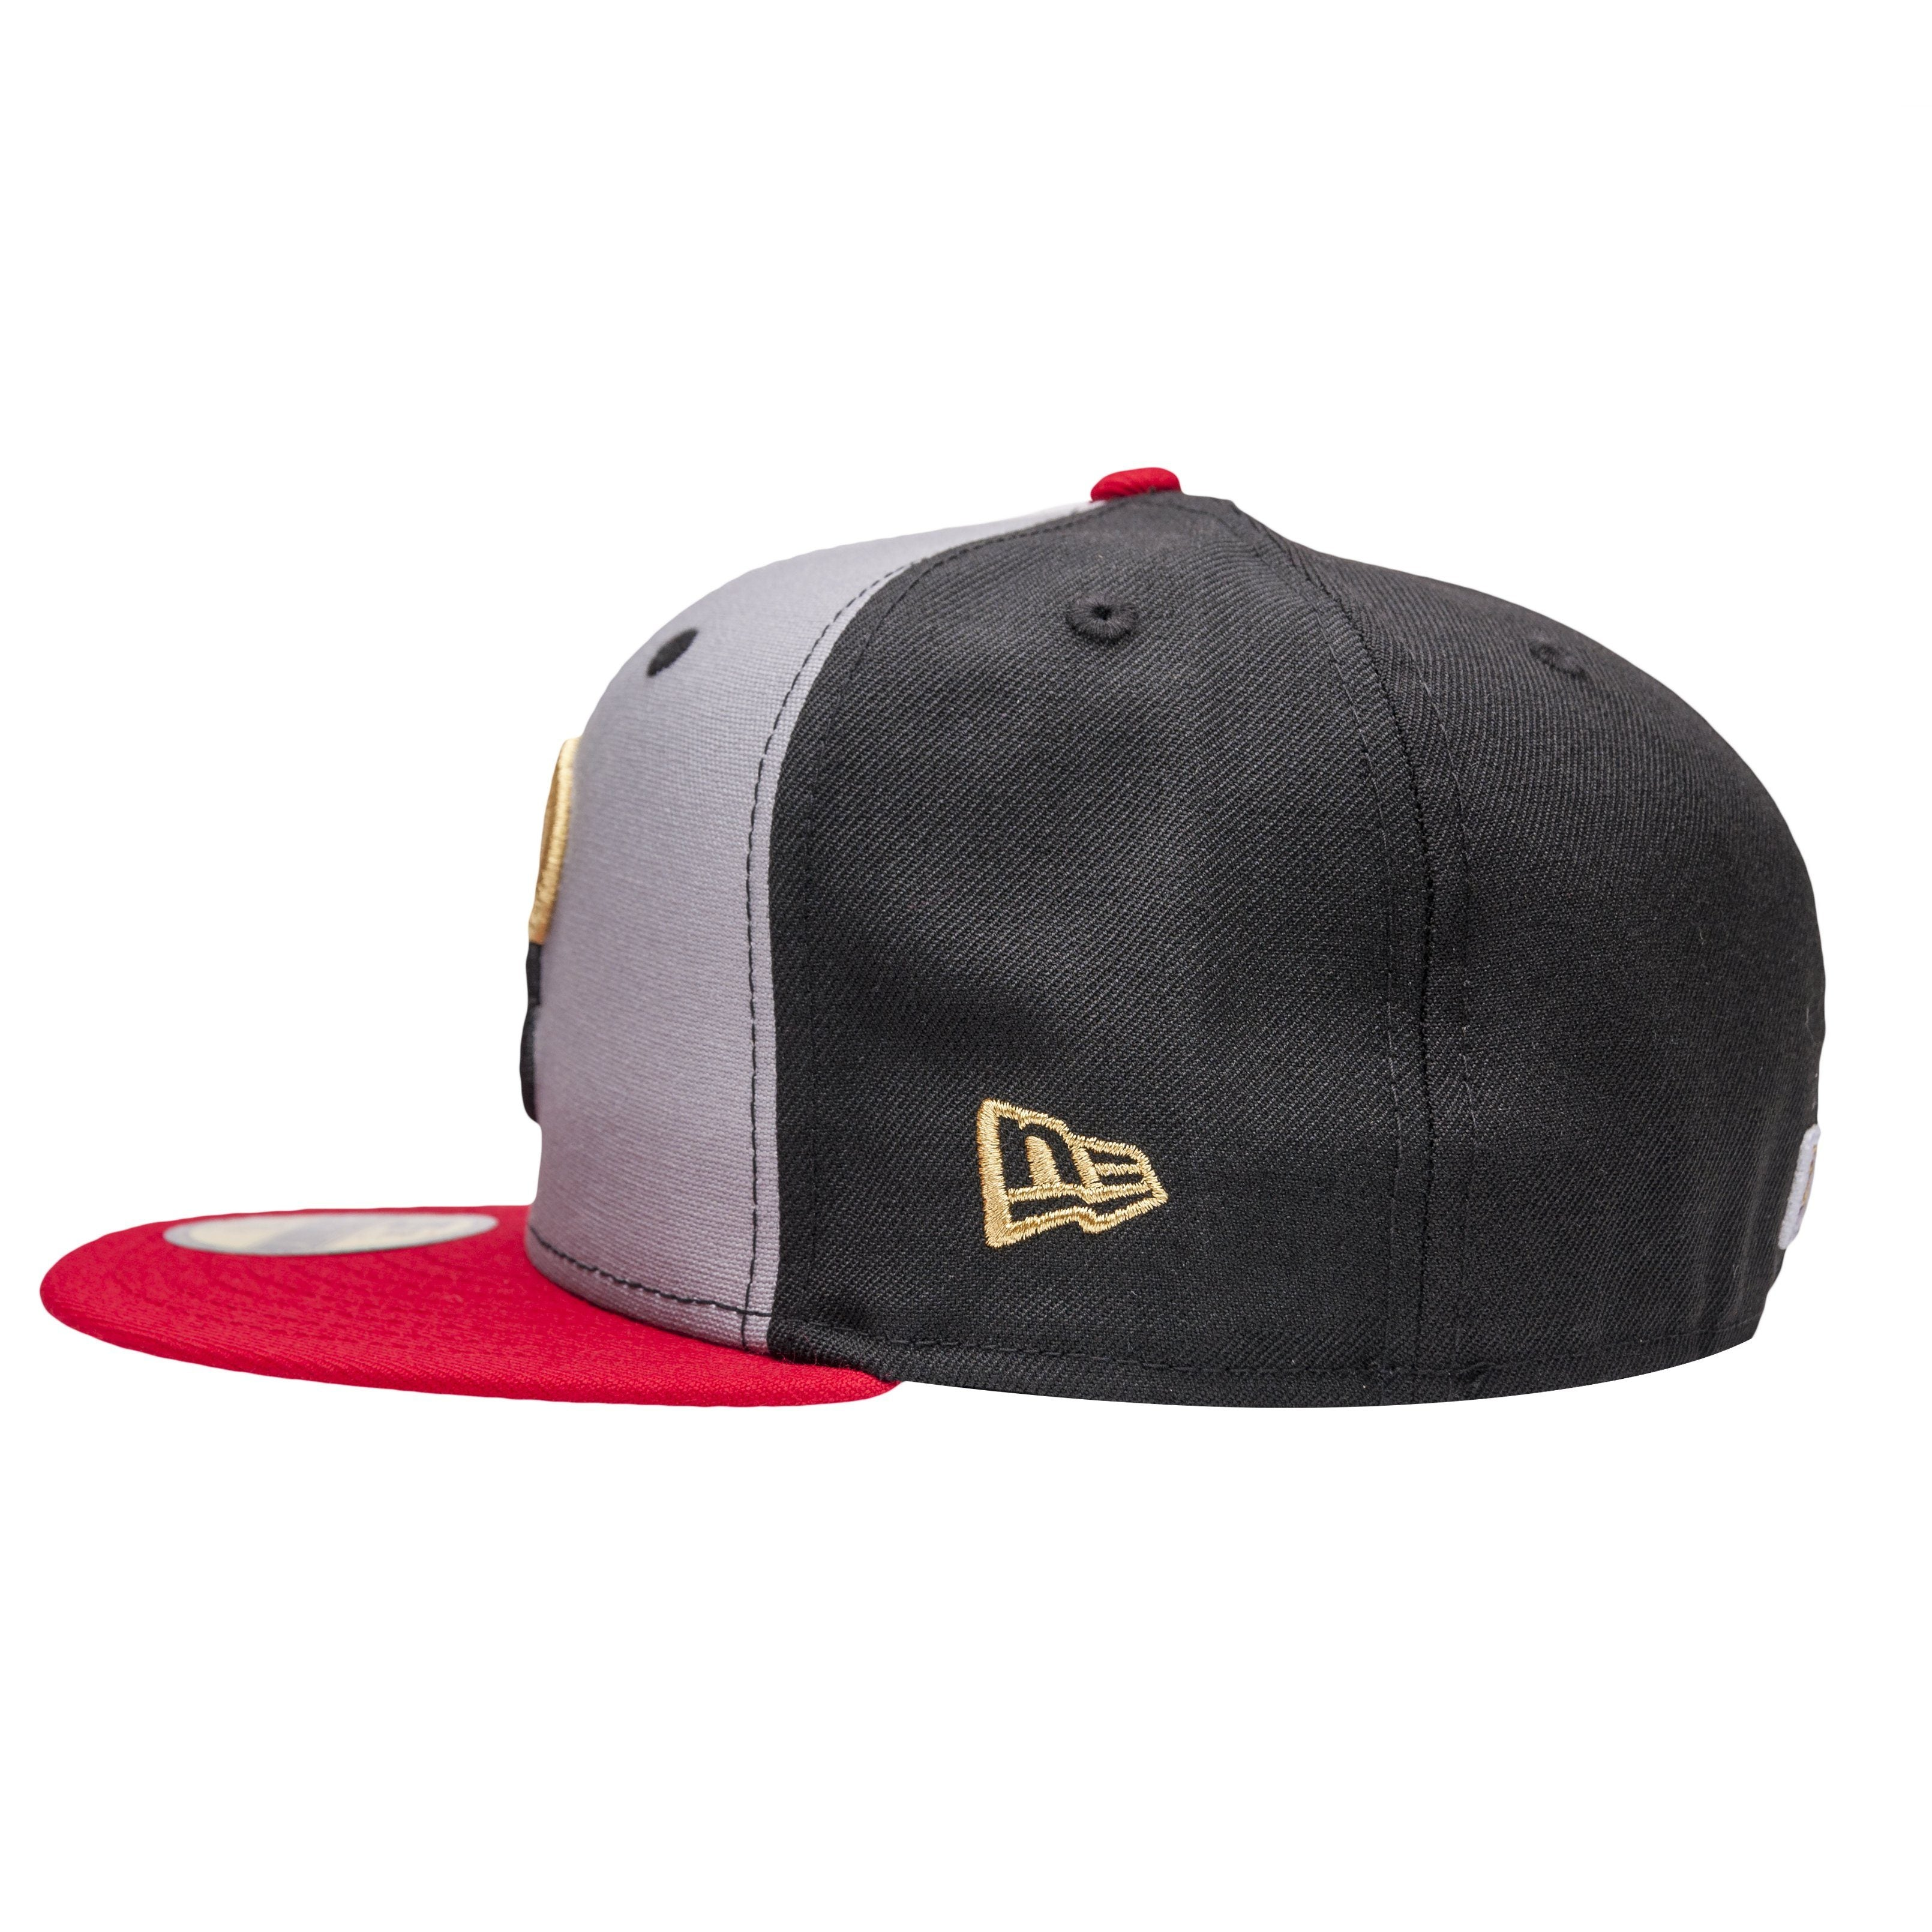 Leaders 15th Anniversary Fitted